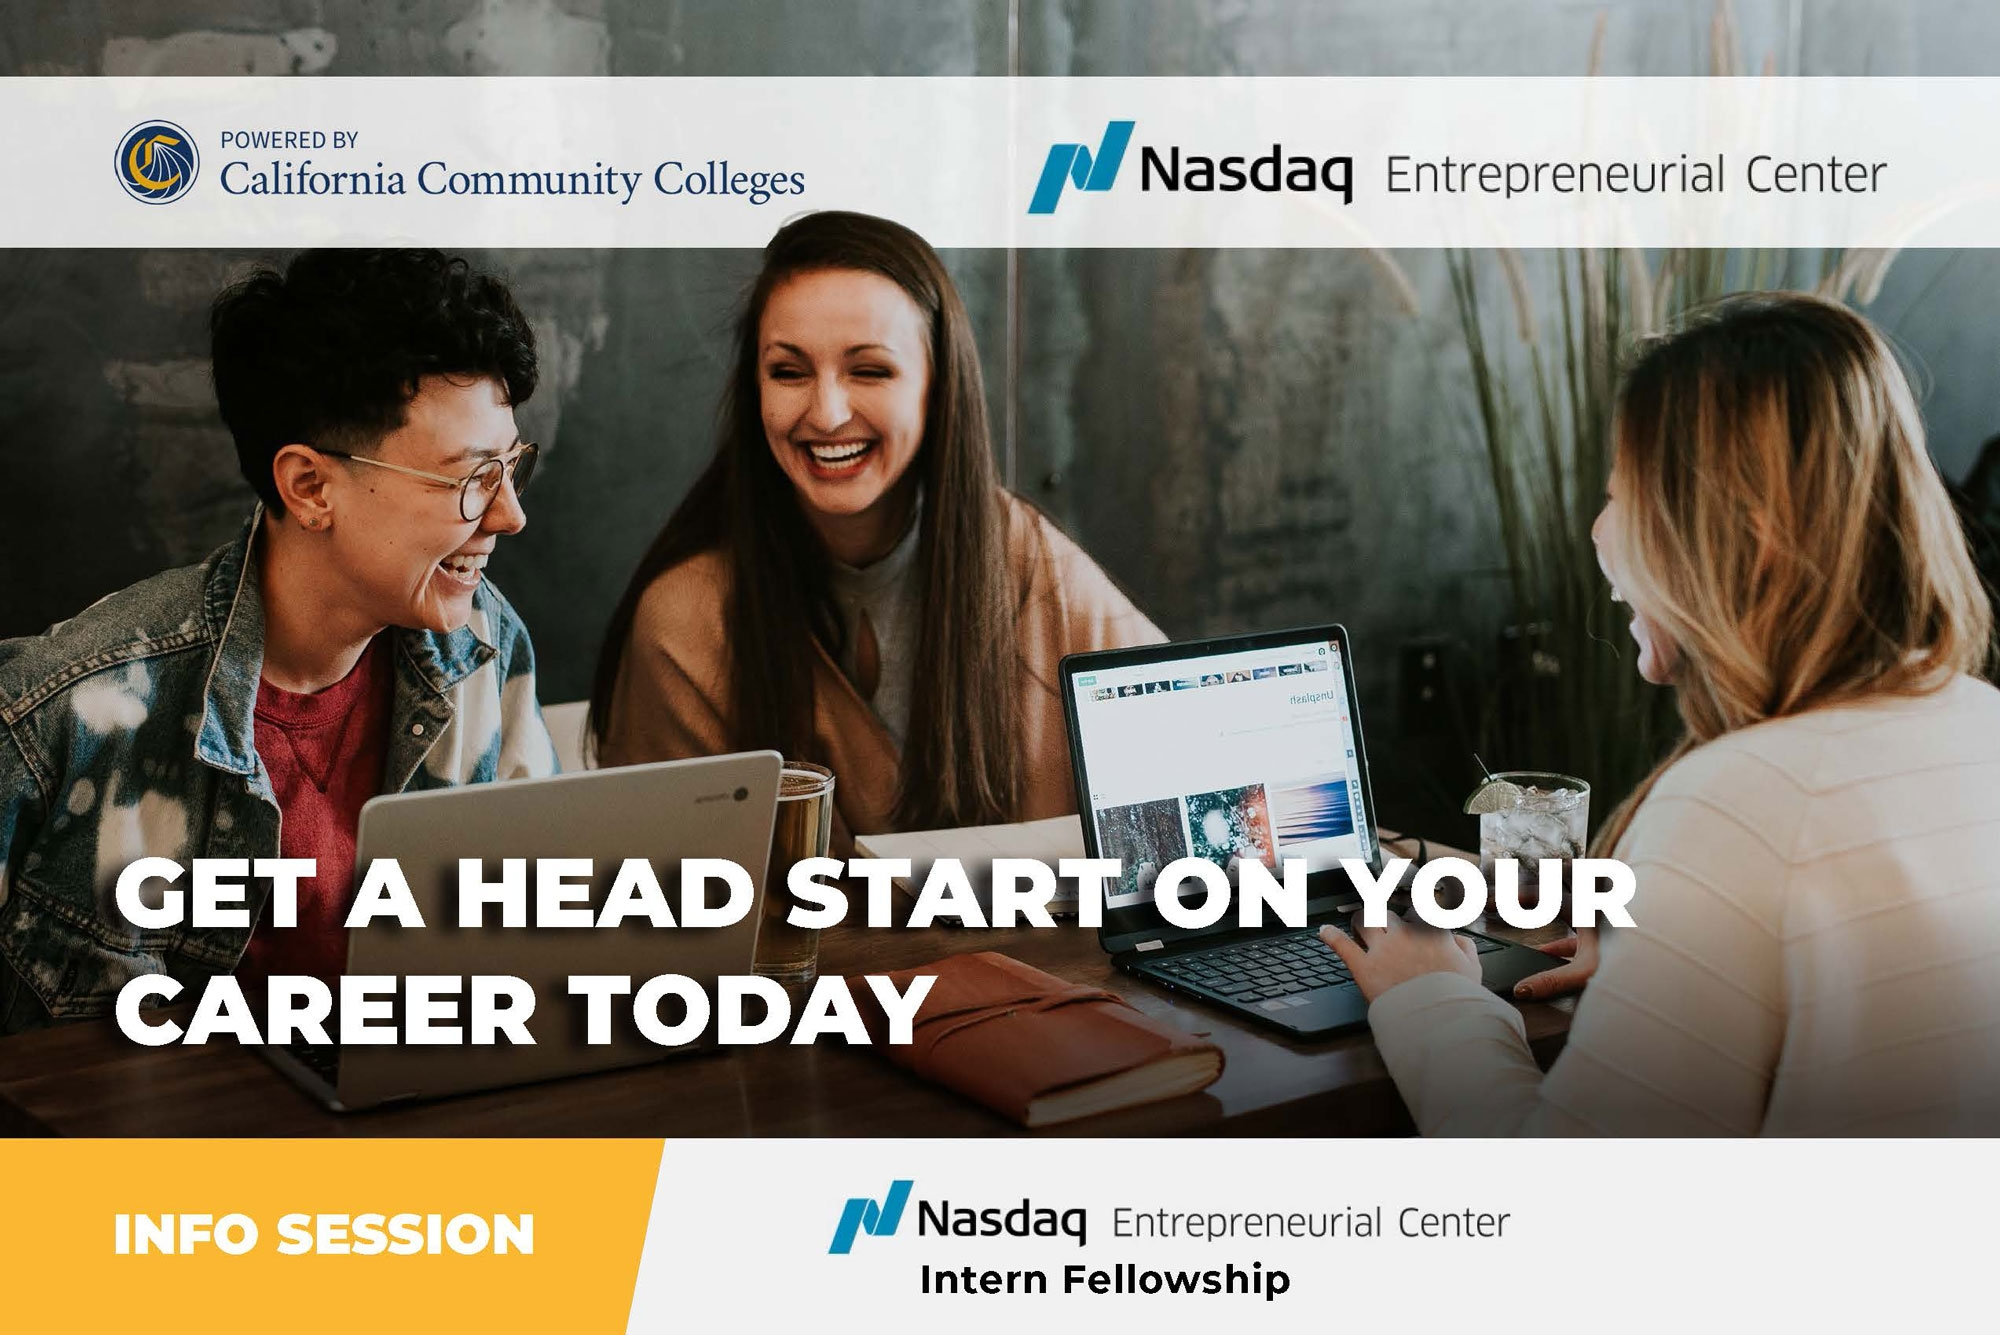 Get a Head Start on Your Career Today